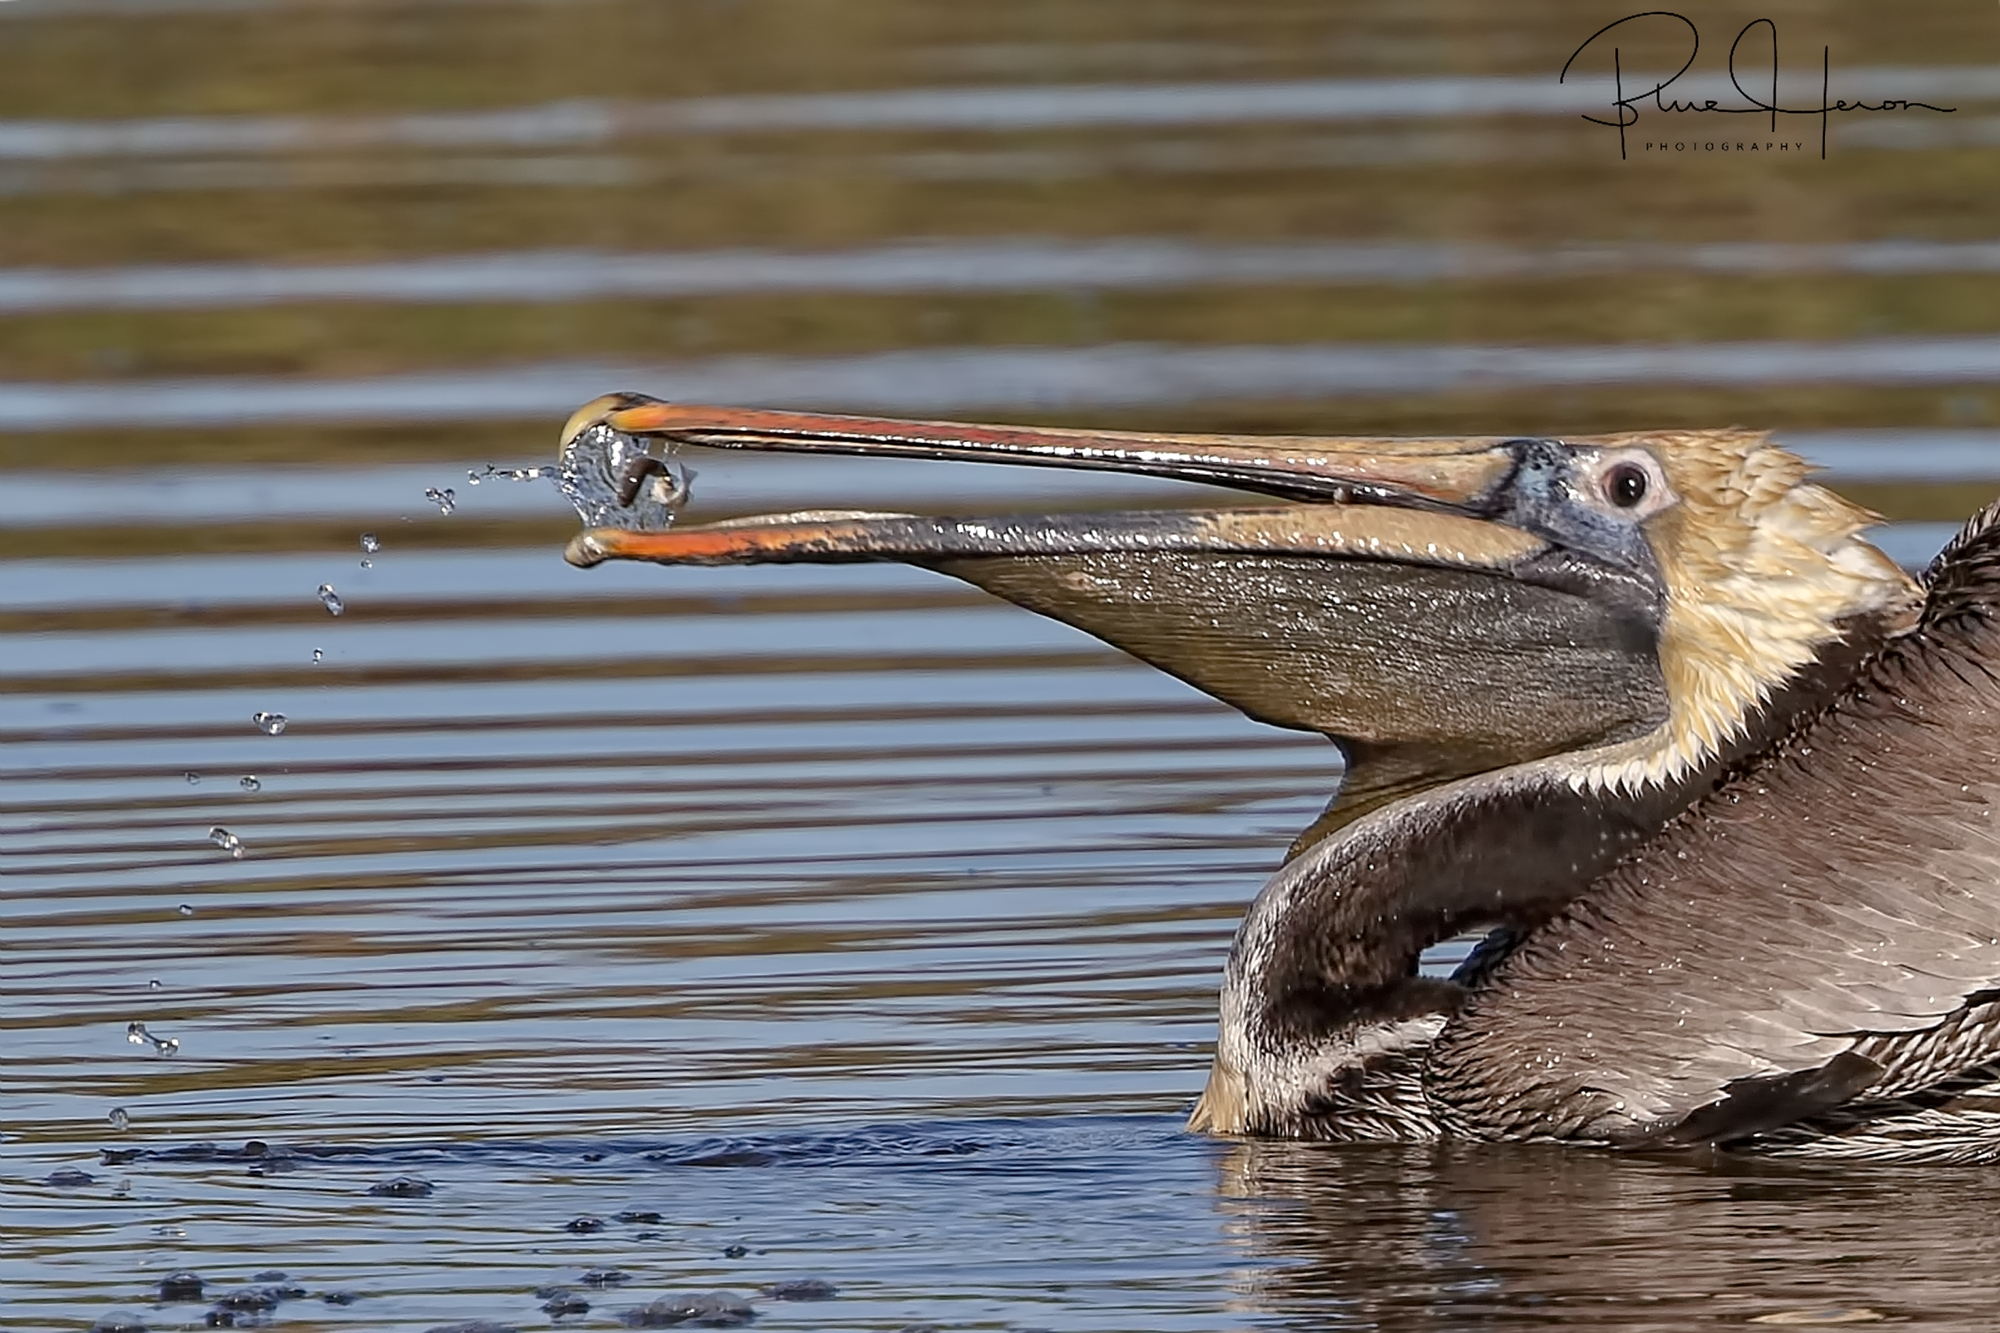 Was amazed to see how adept the Pelicans can be with that huge beak. This one plucked a minnow as if using chopsticks